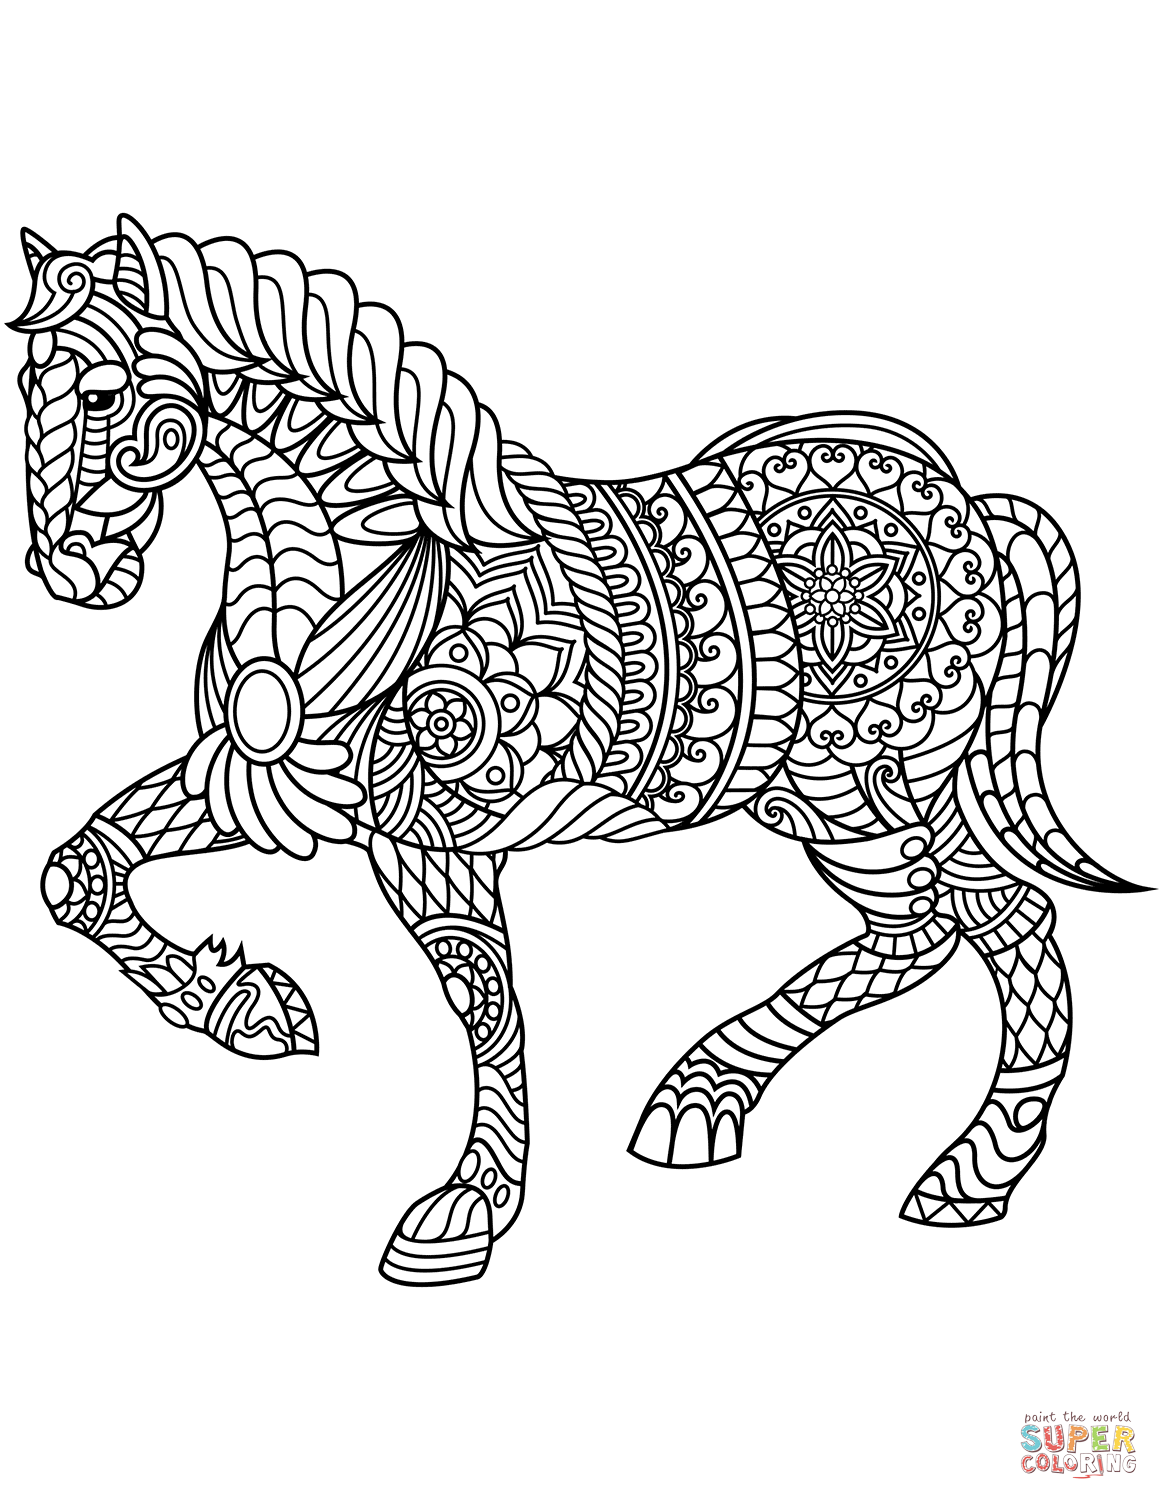 horse zentangle coloring pages horse simple zentangle patterns horses adult coloring pages pages zentangle coloring horse